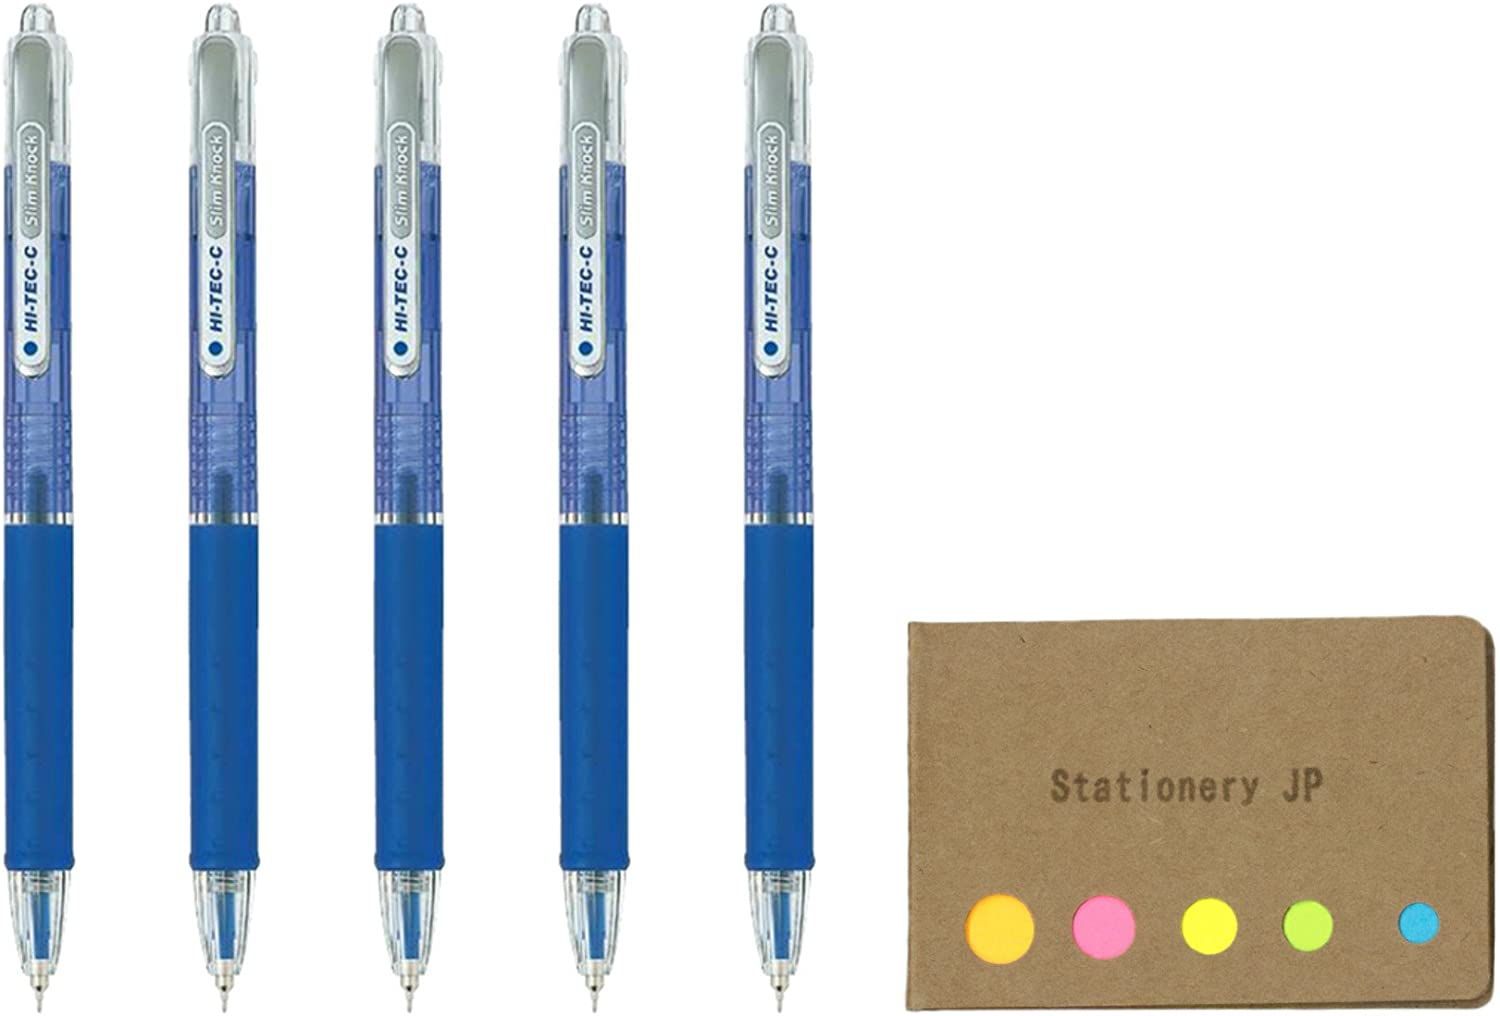 Pilot Hi-Tec-C SlimKnock 04 Retractable Gel Ink Pen, Ultra Fine Point 0.4mm, Blue Ink, 5-Pack, Sticky Notes Value Set